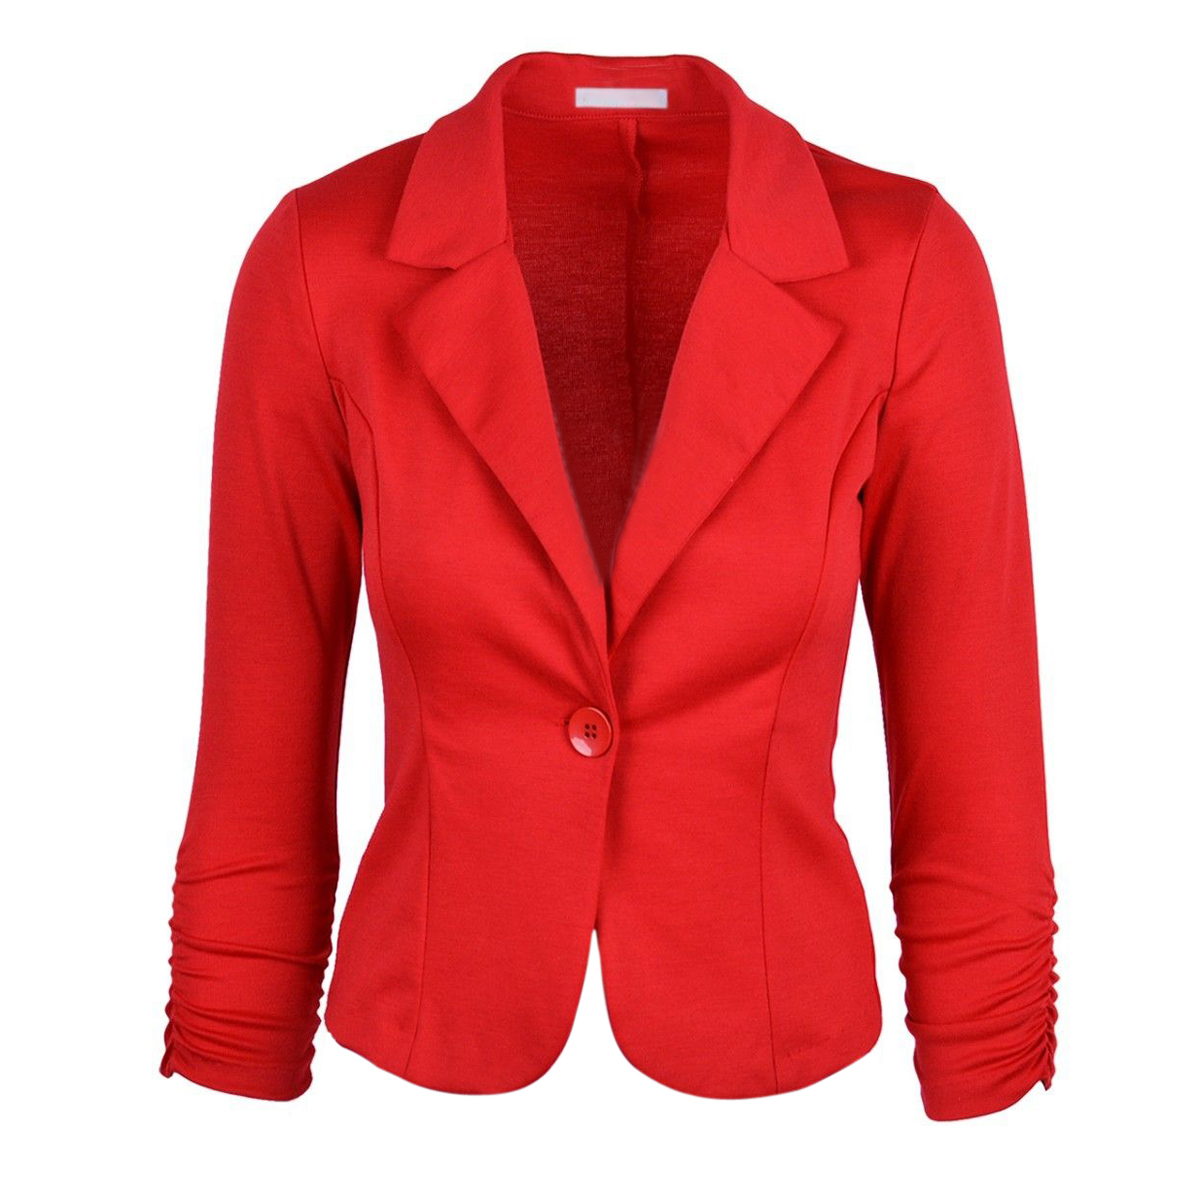 SYB 2020 NEW Womens Blazer Jacket Long Sleeve Candy Button Red